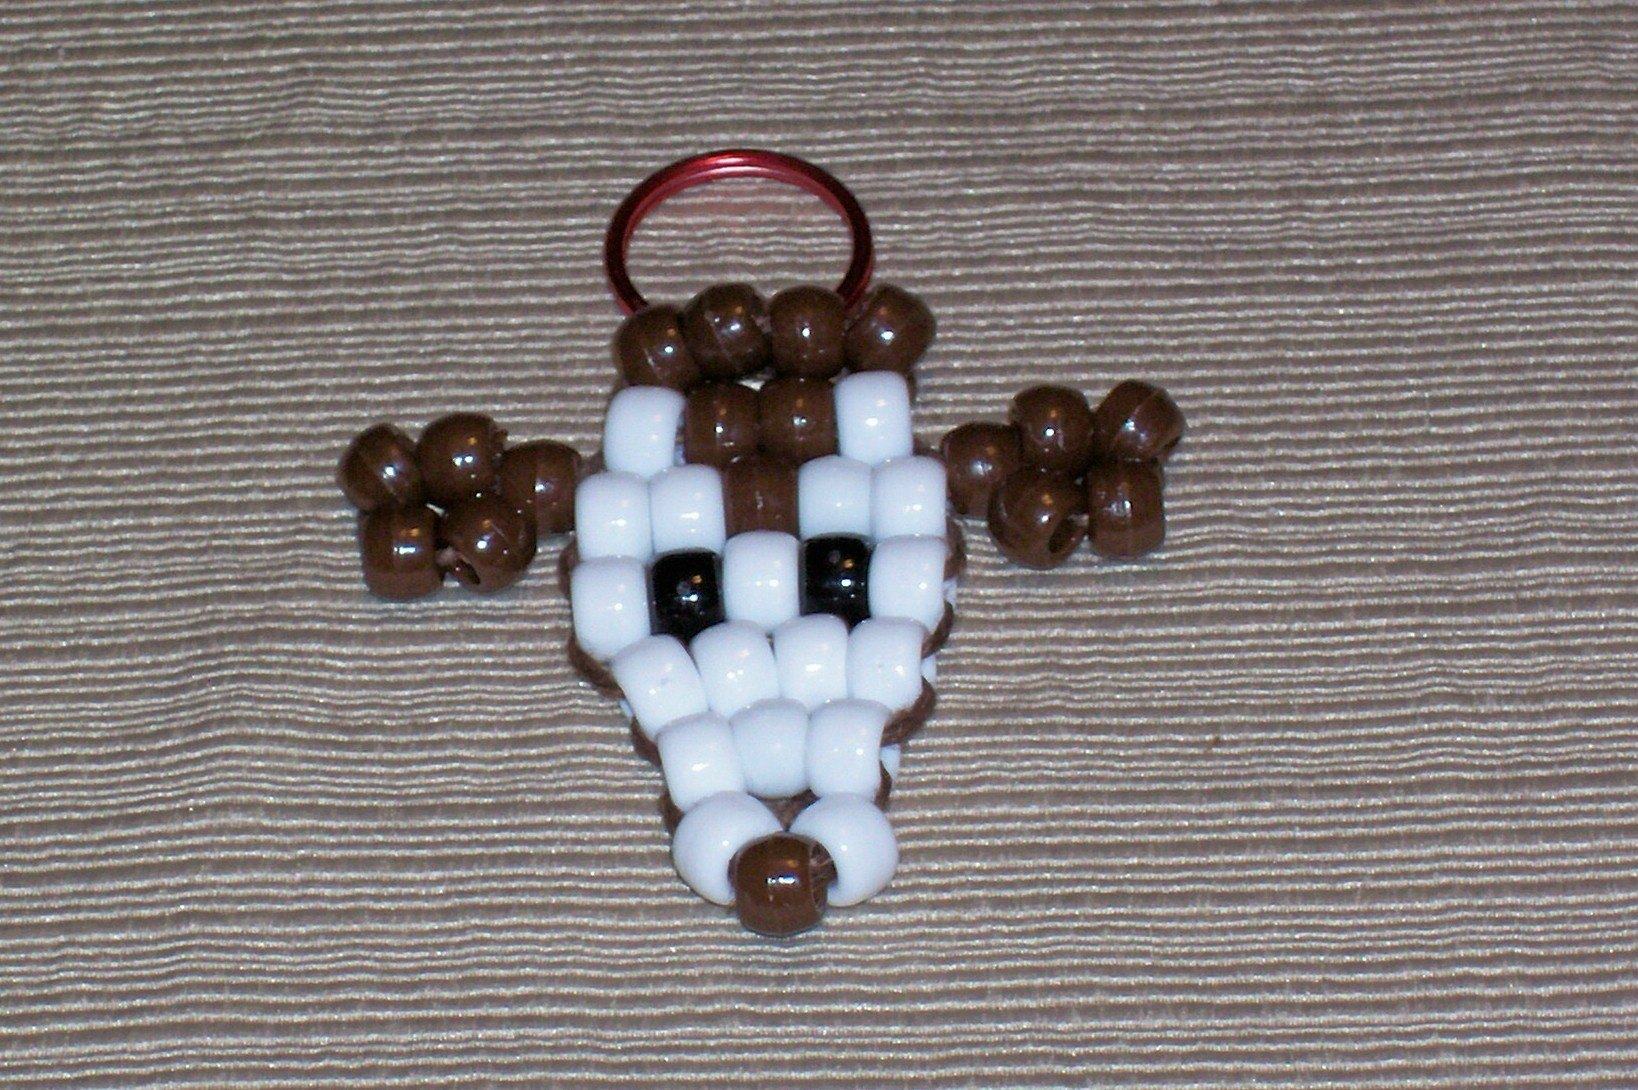 26 Gauge Wire >> How to Make a Beaded Animal Keychain | eHow